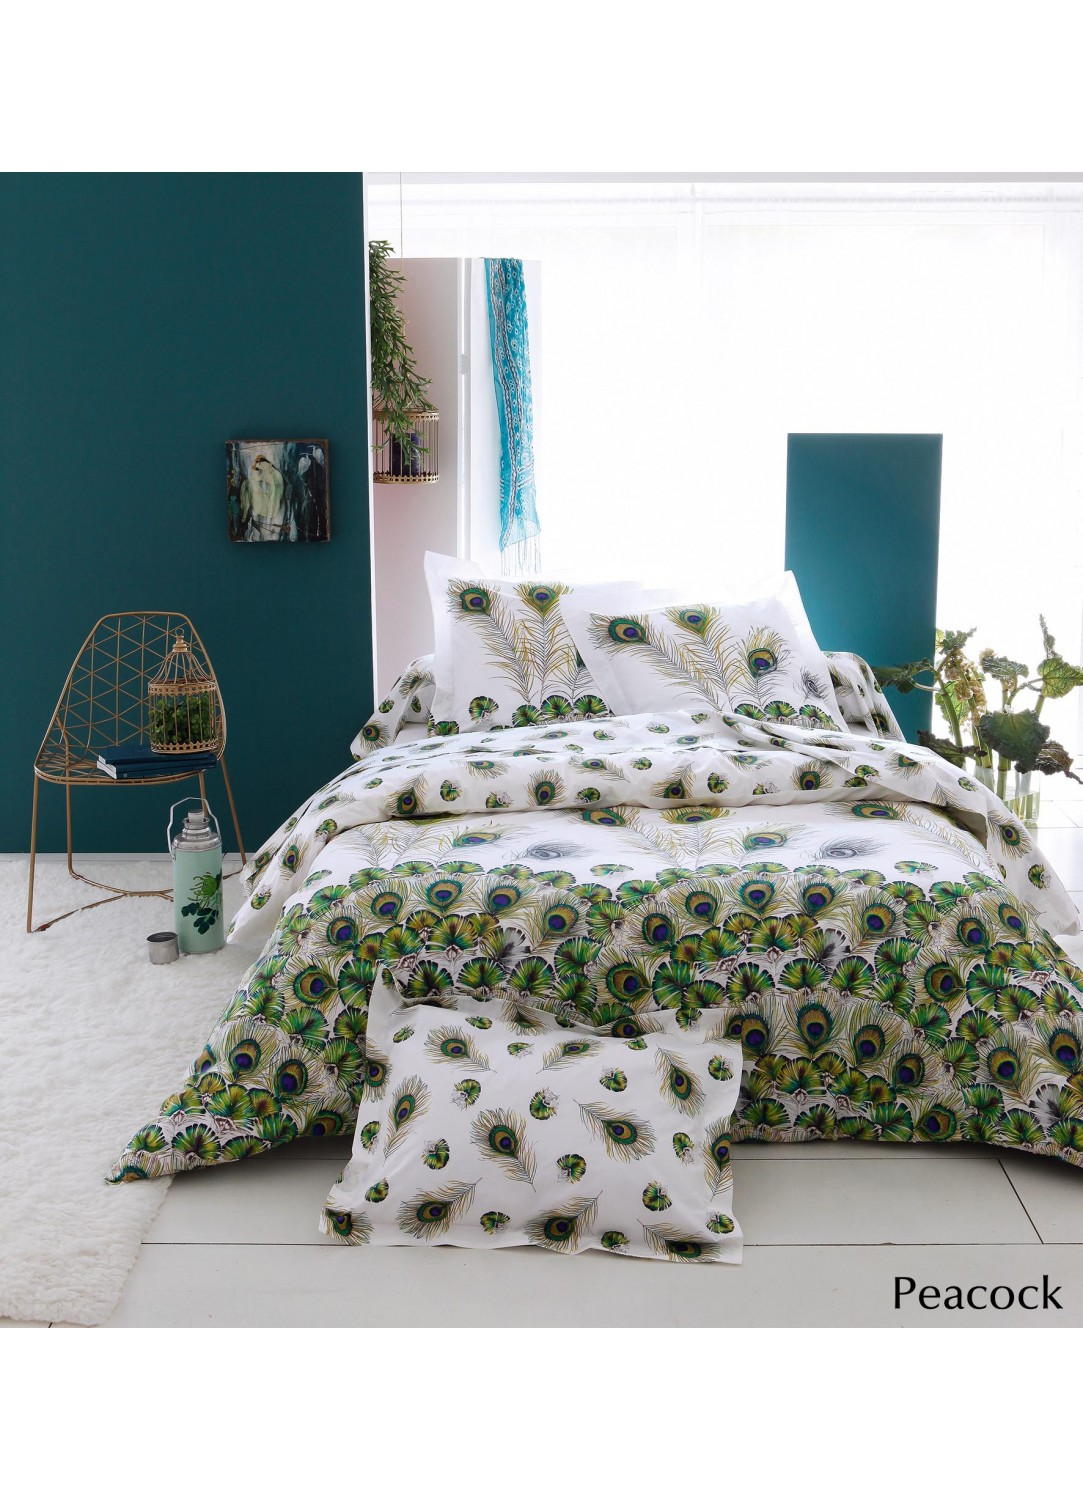 parure peacock blanc vert homemaison vente en ligne parures de lit. Black Bedroom Furniture Sets. Home Design Ideas